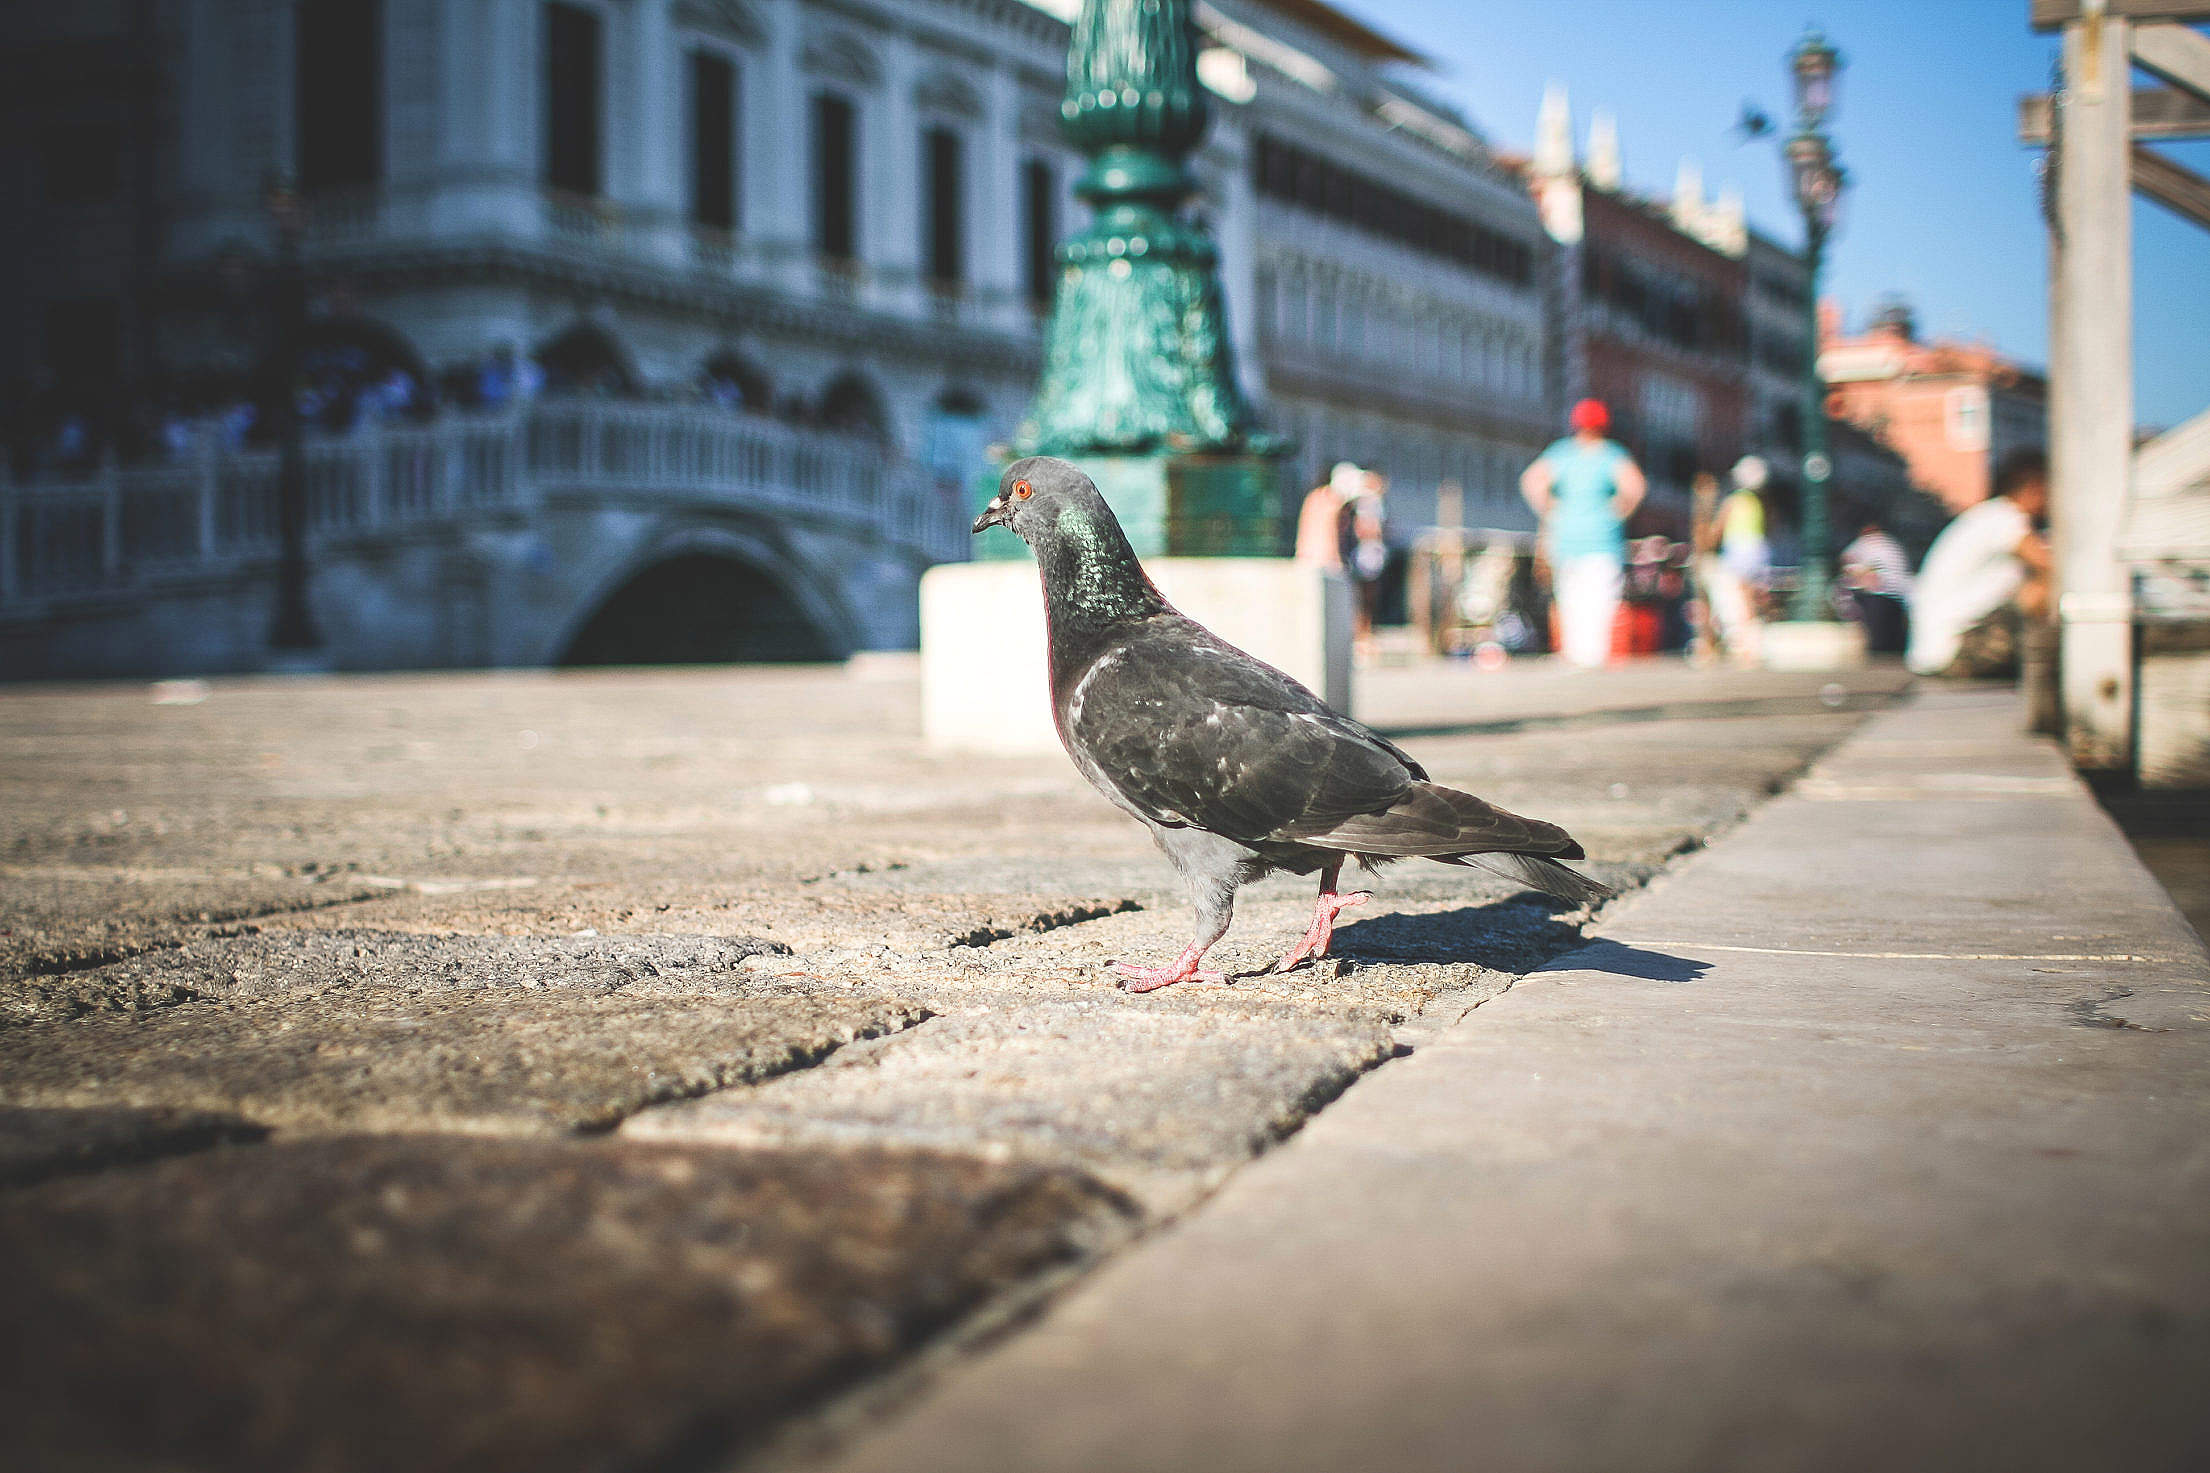 Pigeon in Venice Streets Free Stock Photo